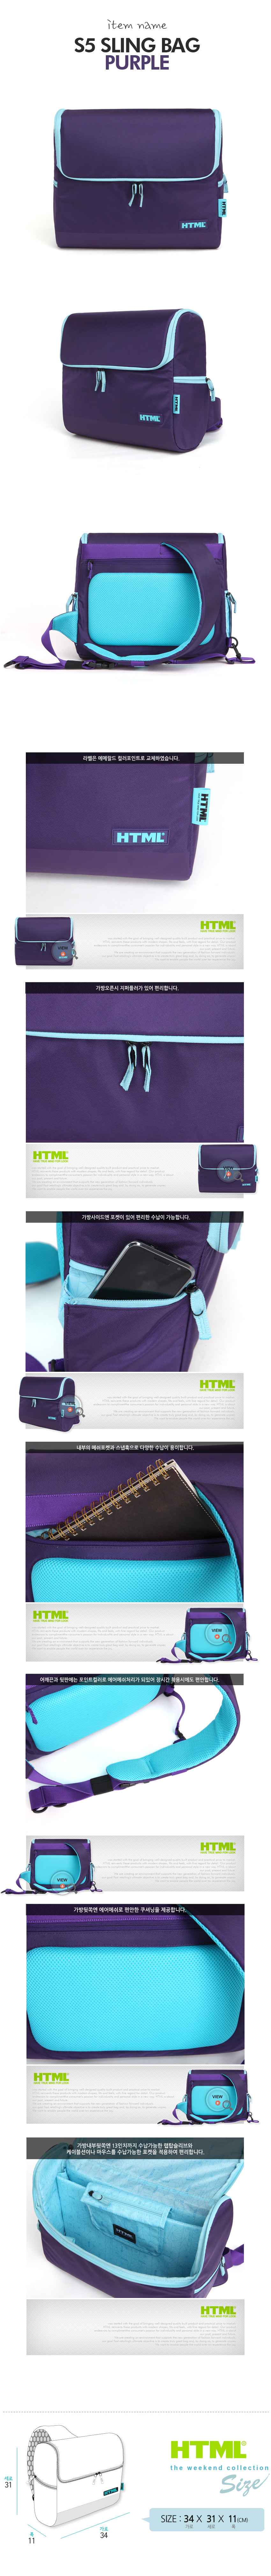 HTML - S5 Slingbag (Purple)